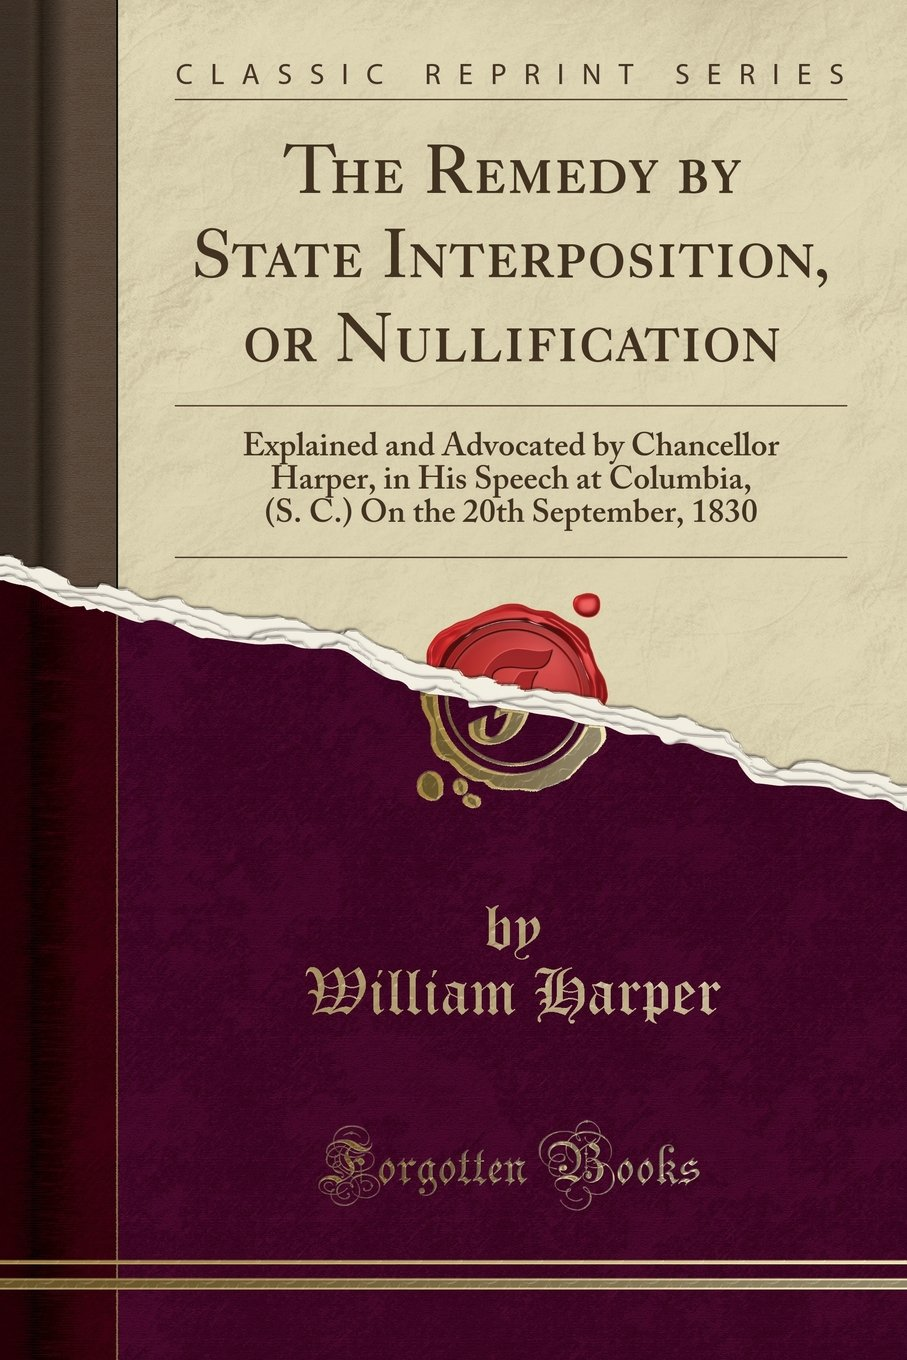 The Remedy by State Interposition, or Nullification: Explained and Advocated by Chancellor Harper, in His Speech at Columbia, (S. C.) on the 20th September, 1830 (Classic Reprint) pdf